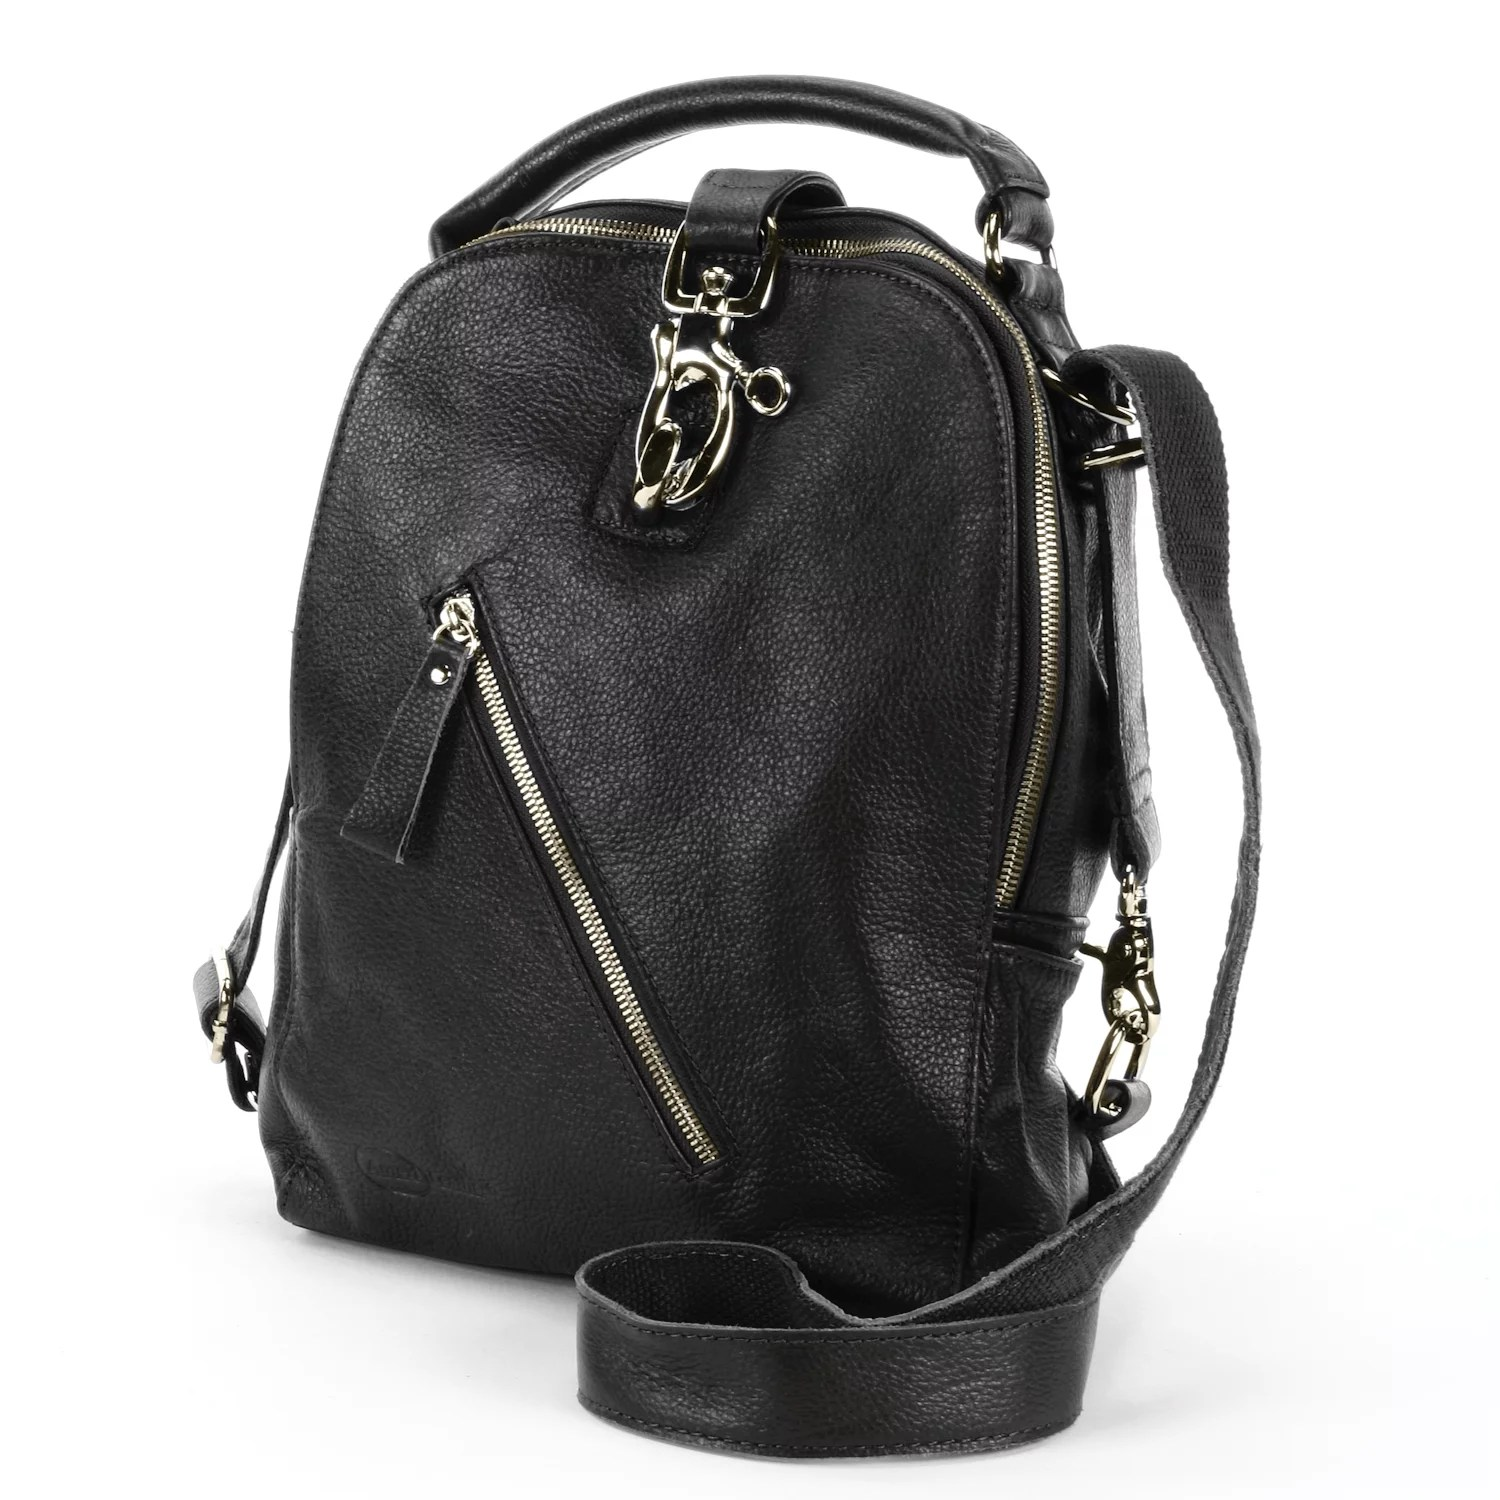 Womens Fashion Backpacks   Accessories   Kohl s AmeriLeather Quince Leather Convertible Backpack